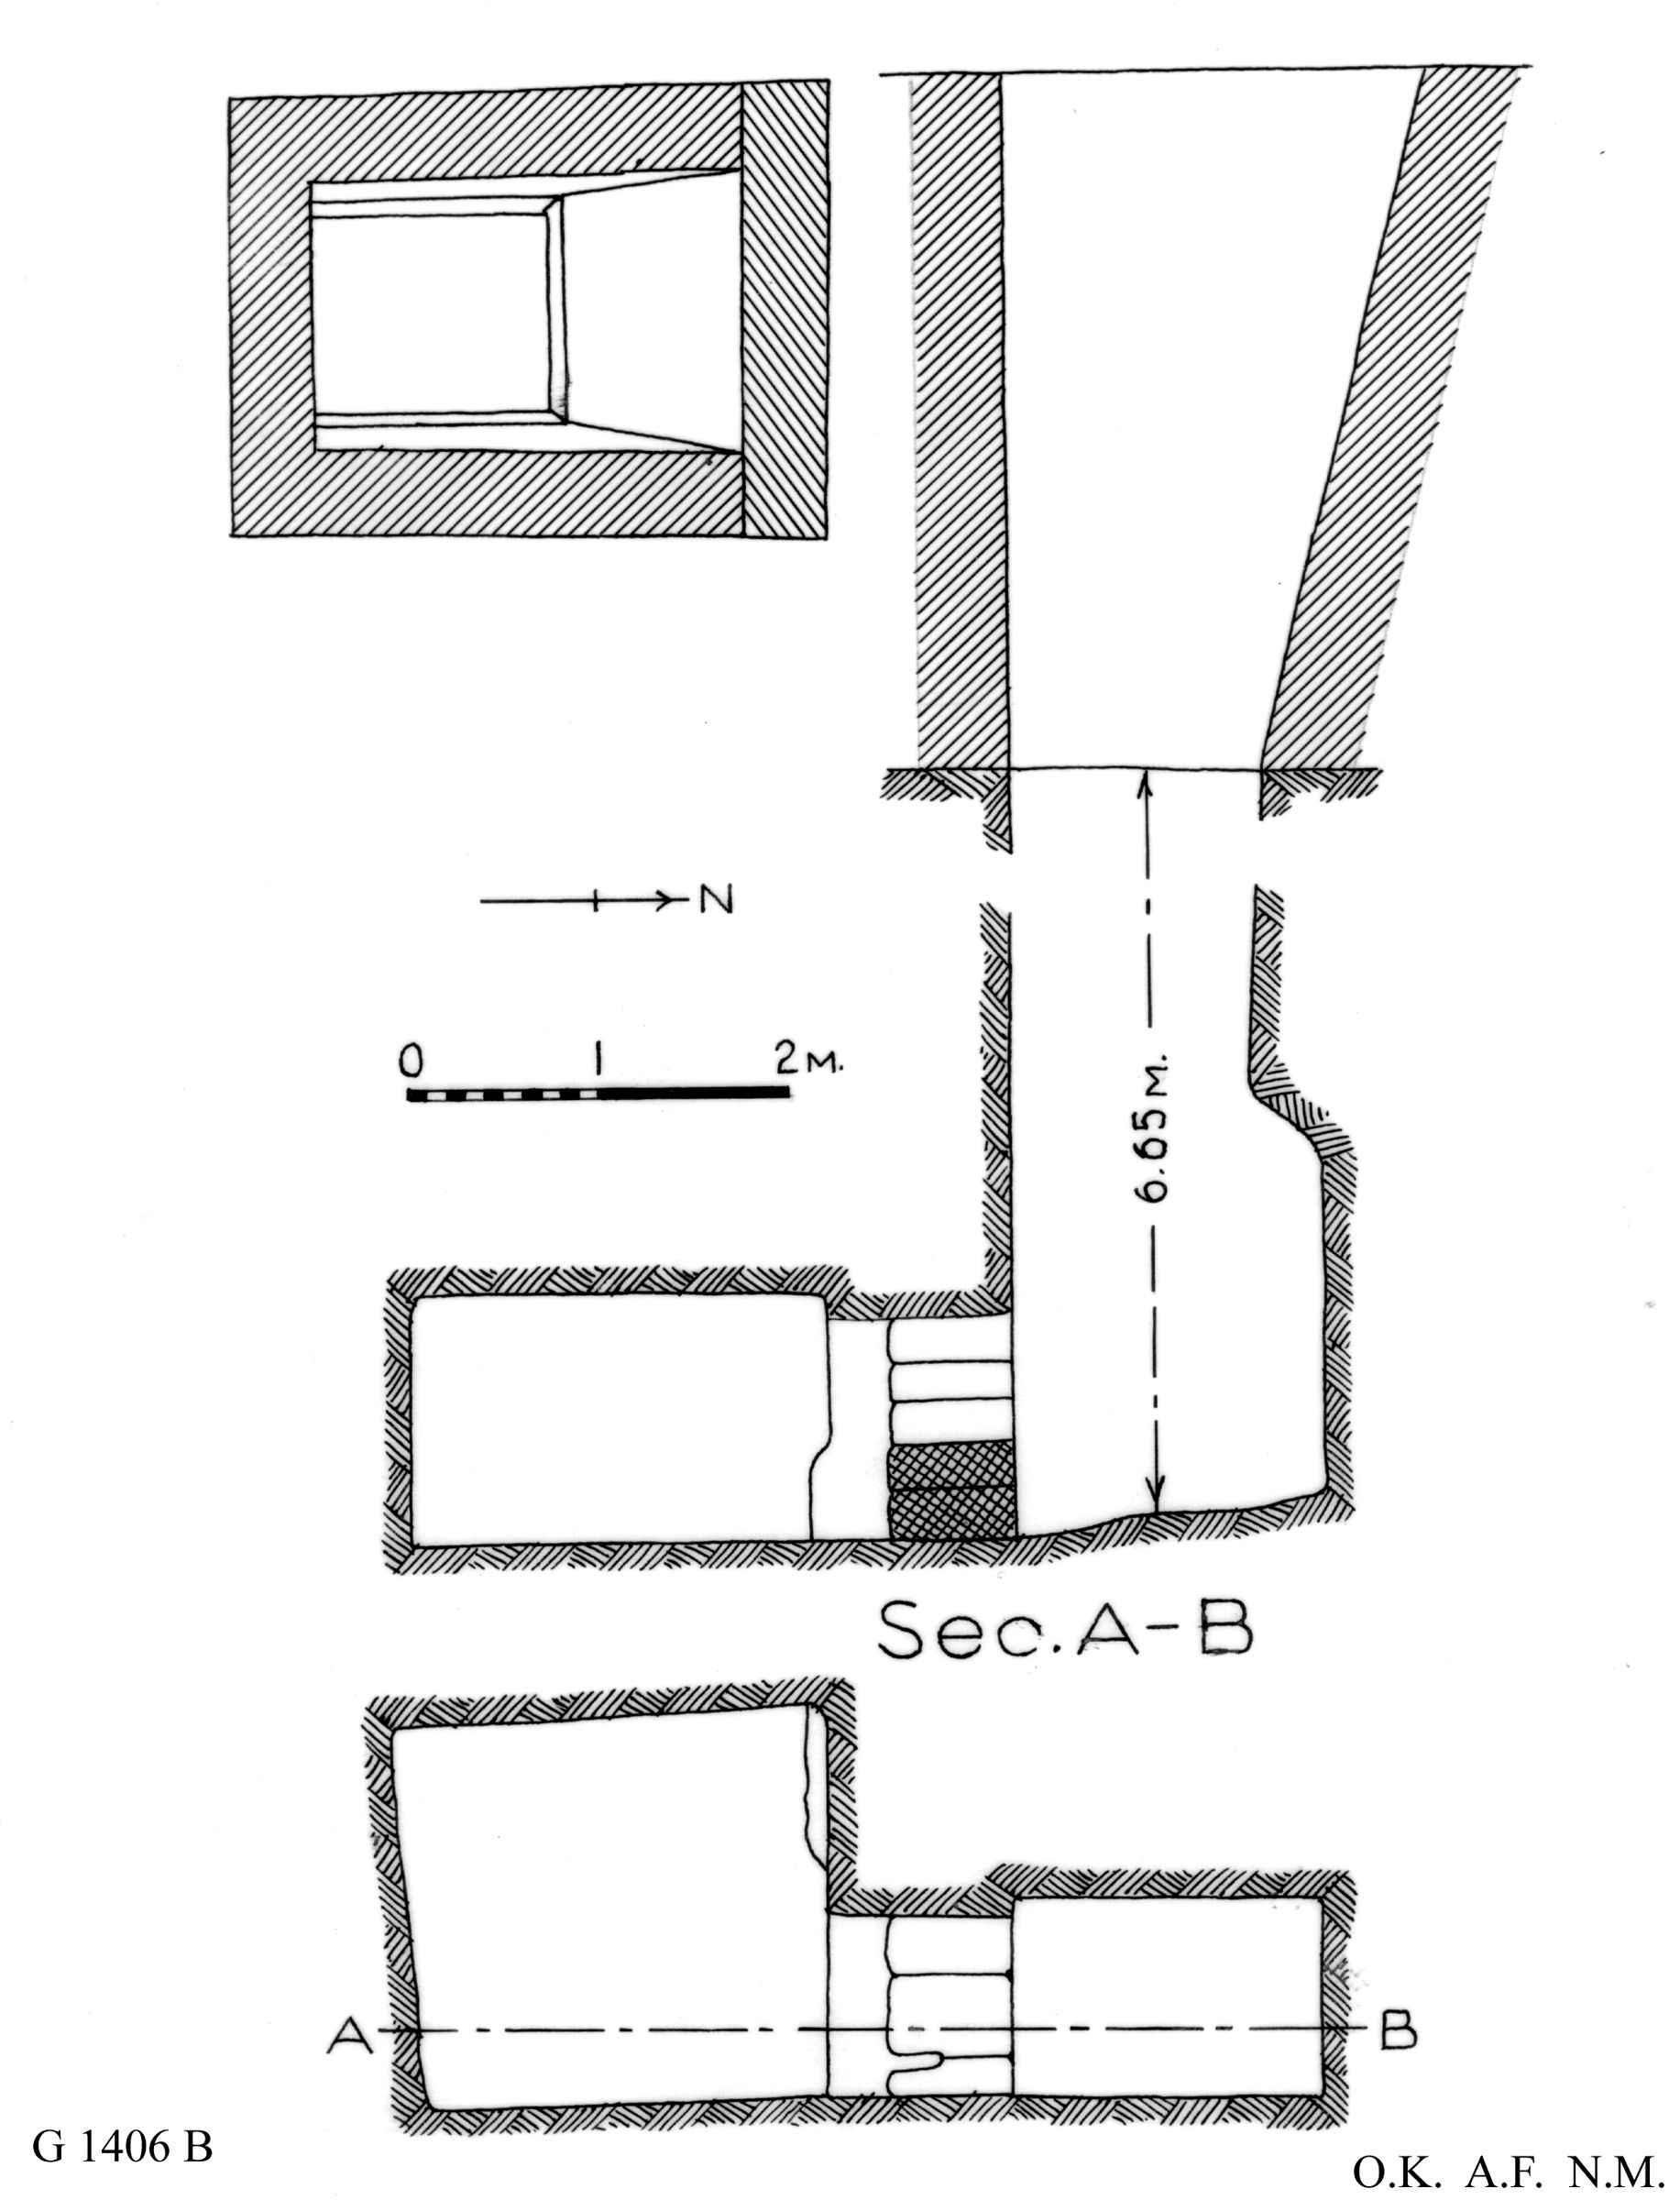 Maps and plans: G 1406, Shaft B